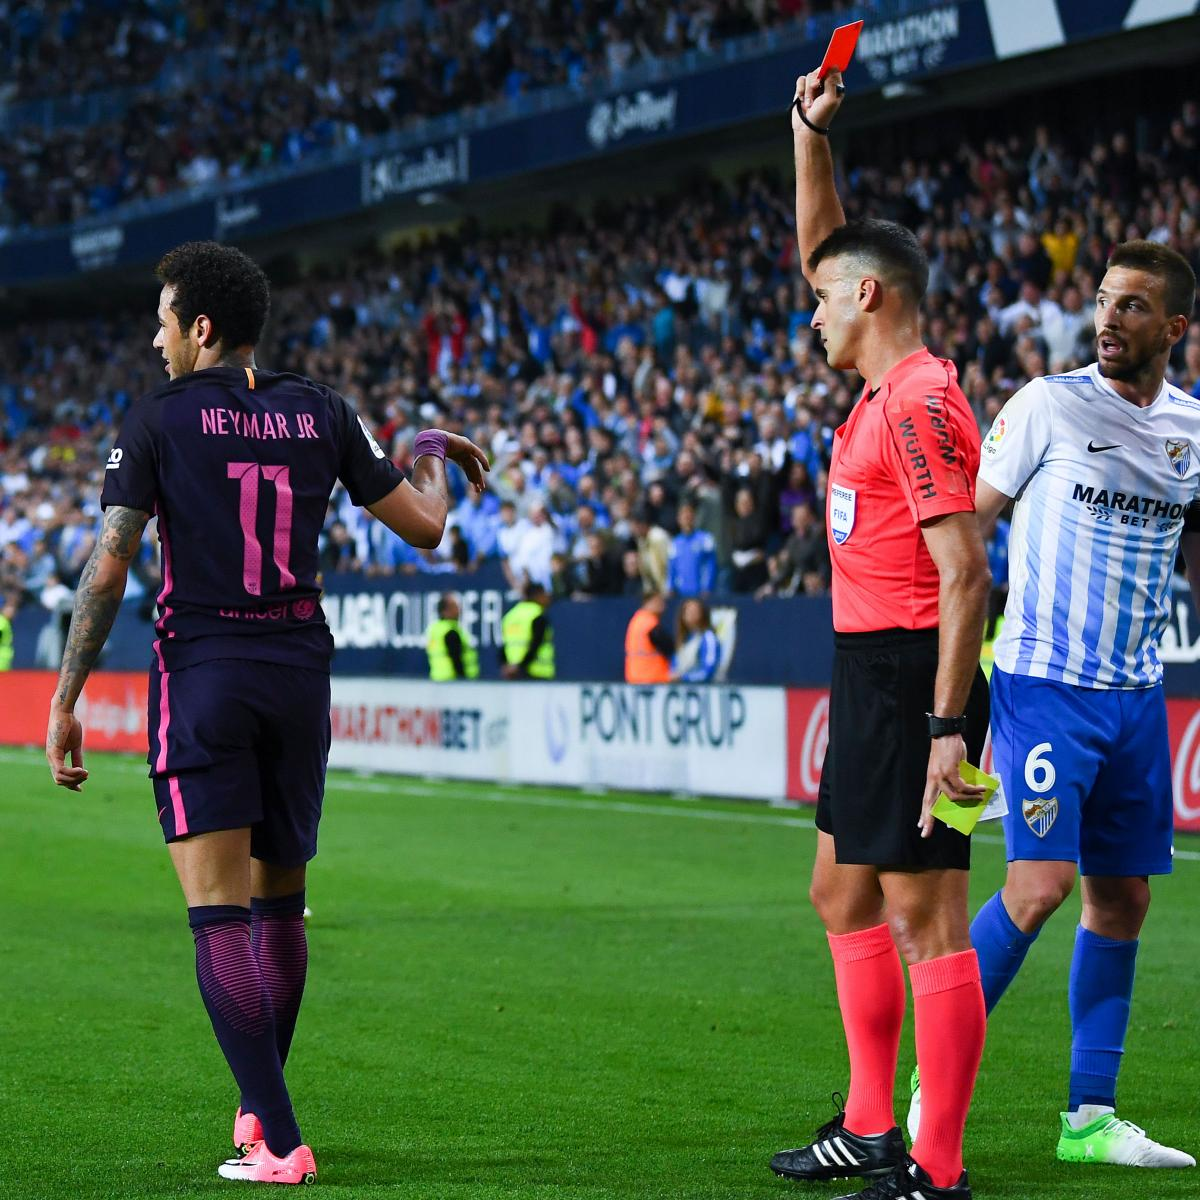 La liga results 2017 week 31 final scores and updated table after saturday bleacher report - La liga latest results and table ...